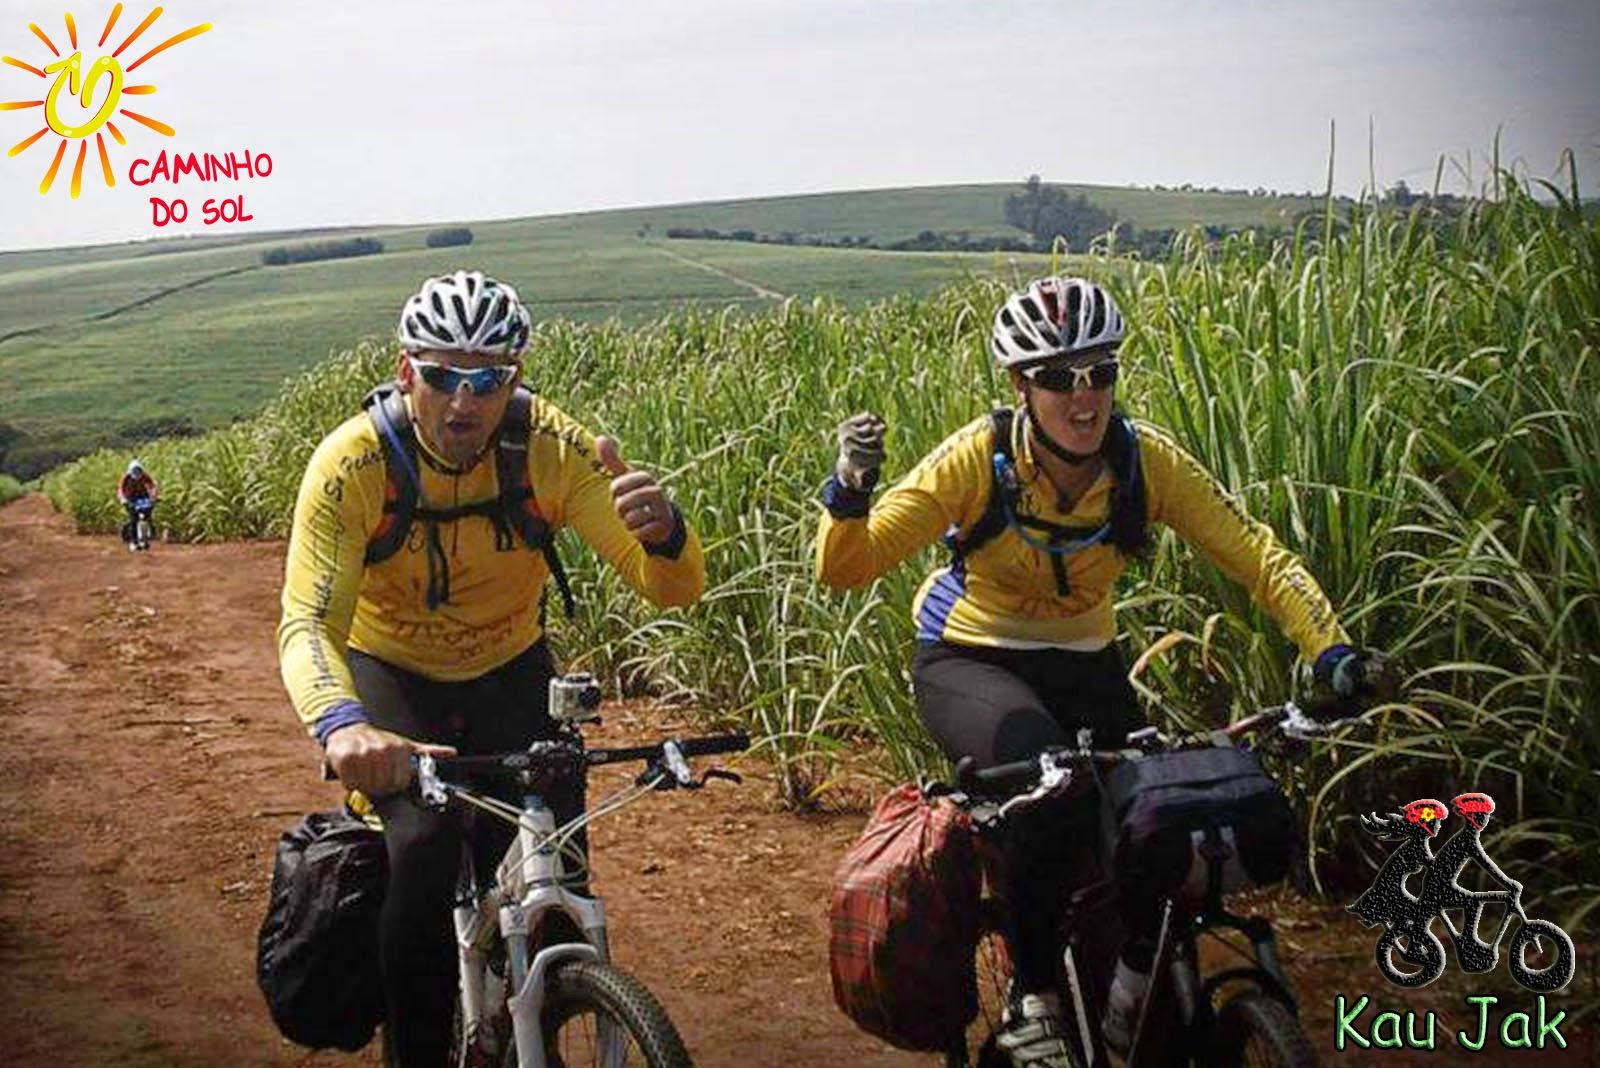 Caminho do Sol de Bike - By Kau Jak